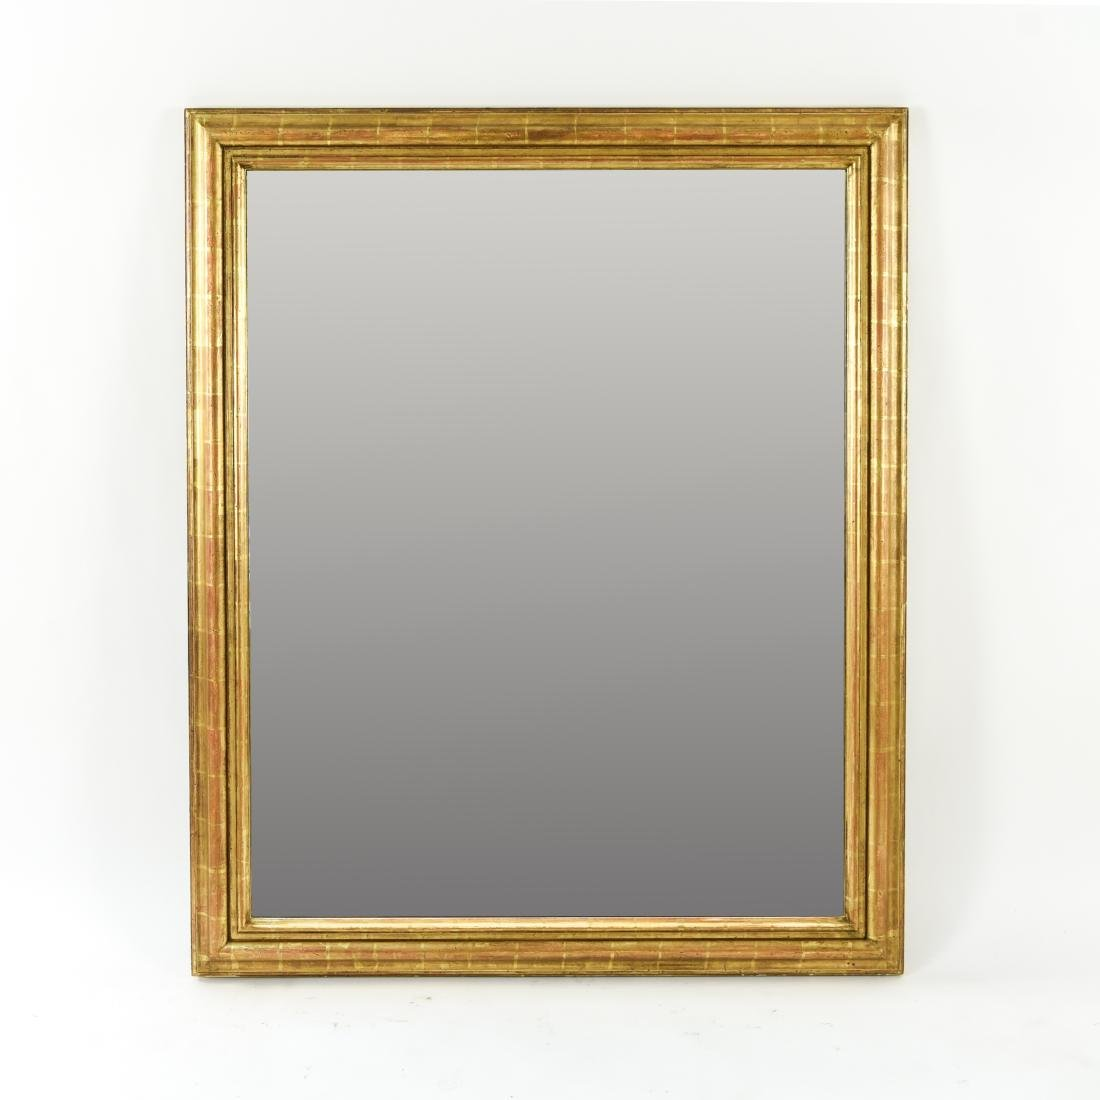 DECORATIVE GOLD FRAME MIRROR